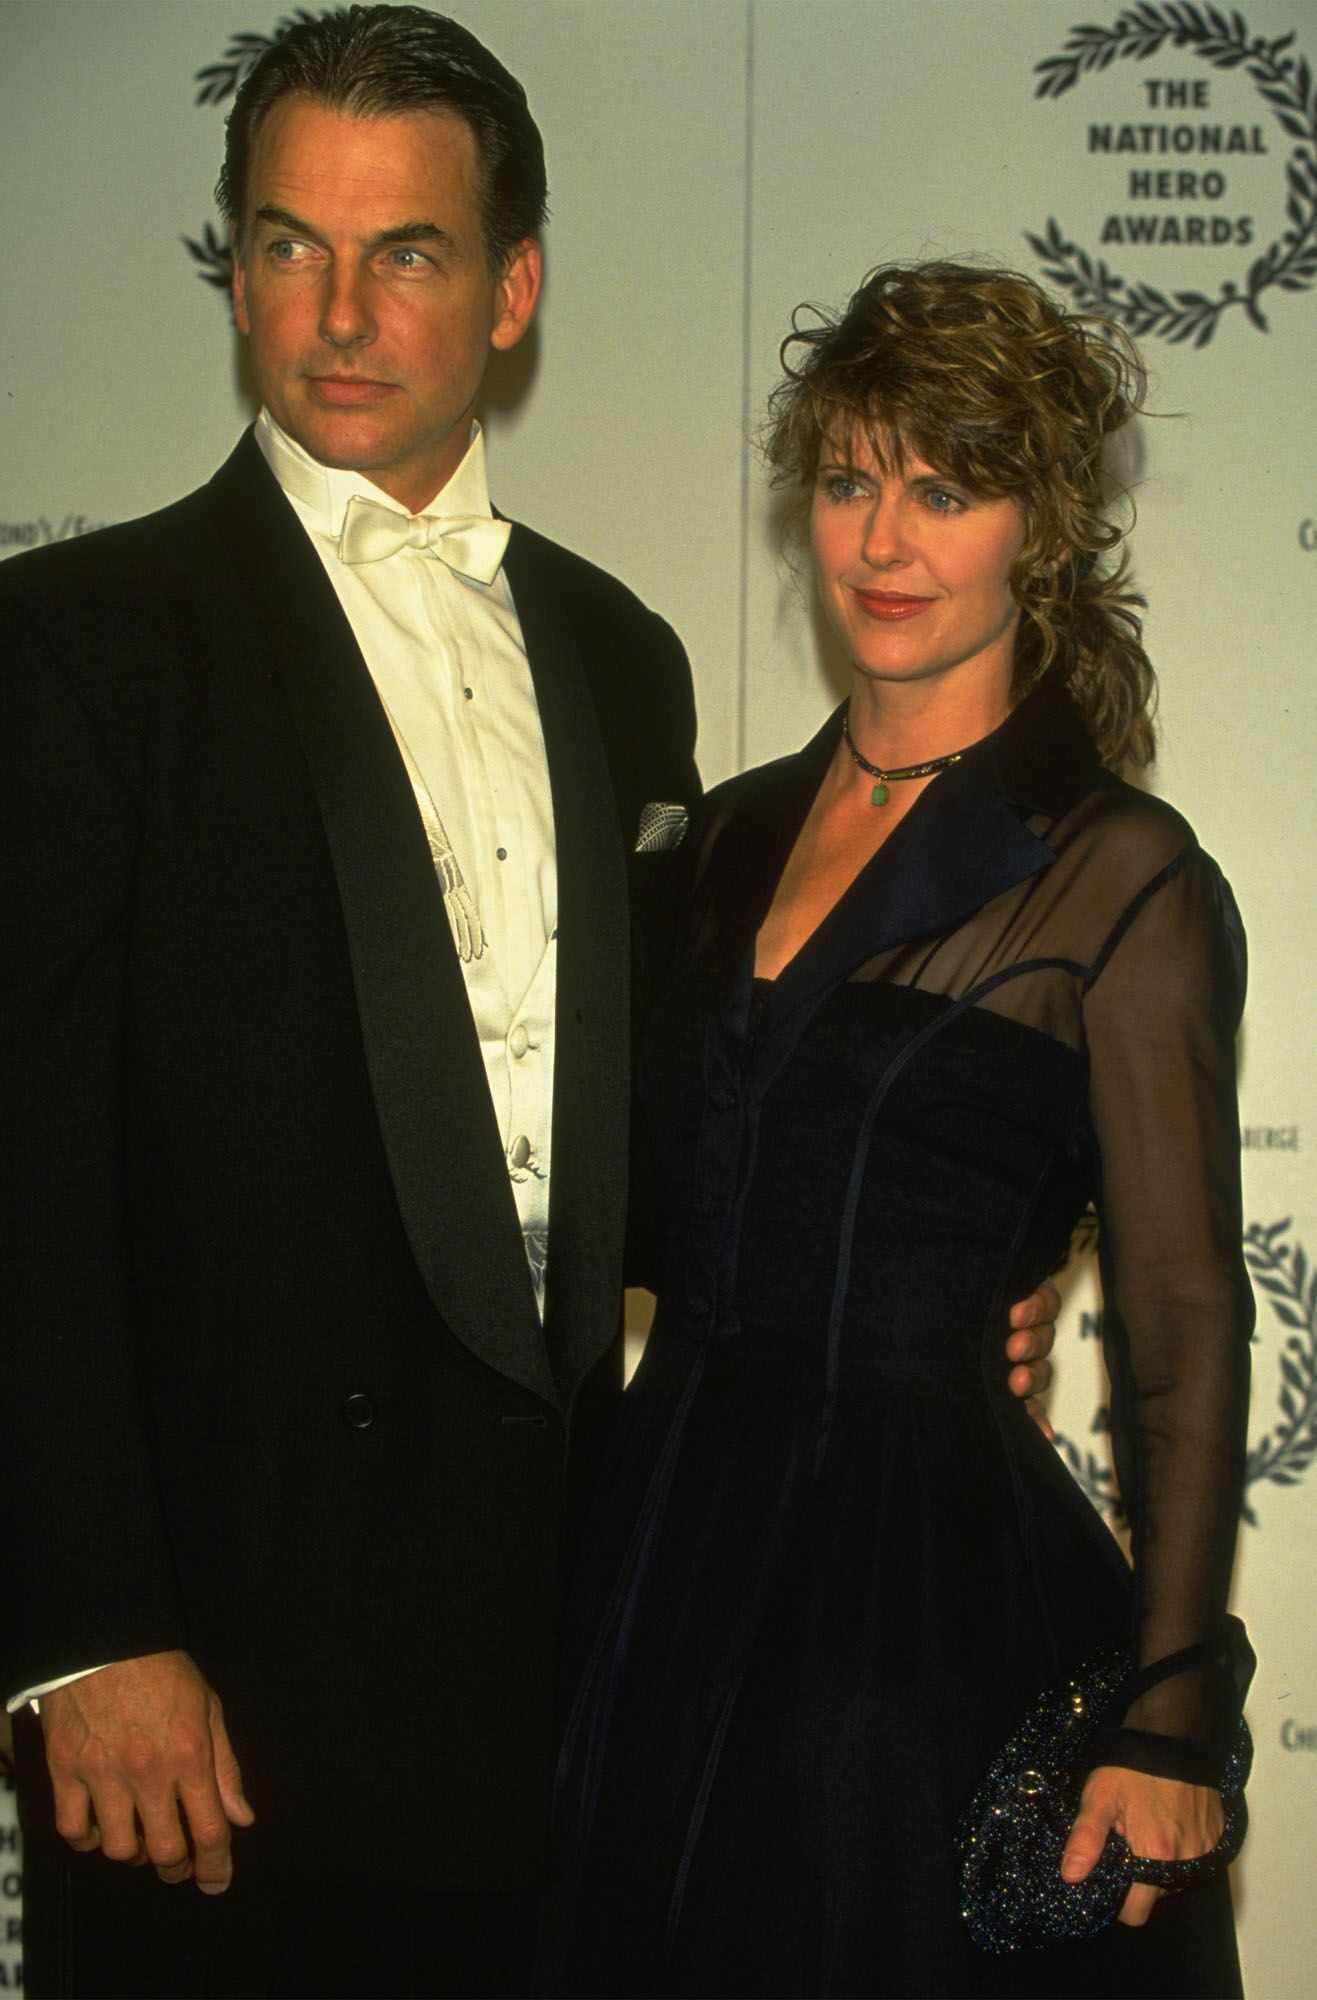 Mark Harmon et Pam Dawber aux National Hero Awards |  Source : Getty Images